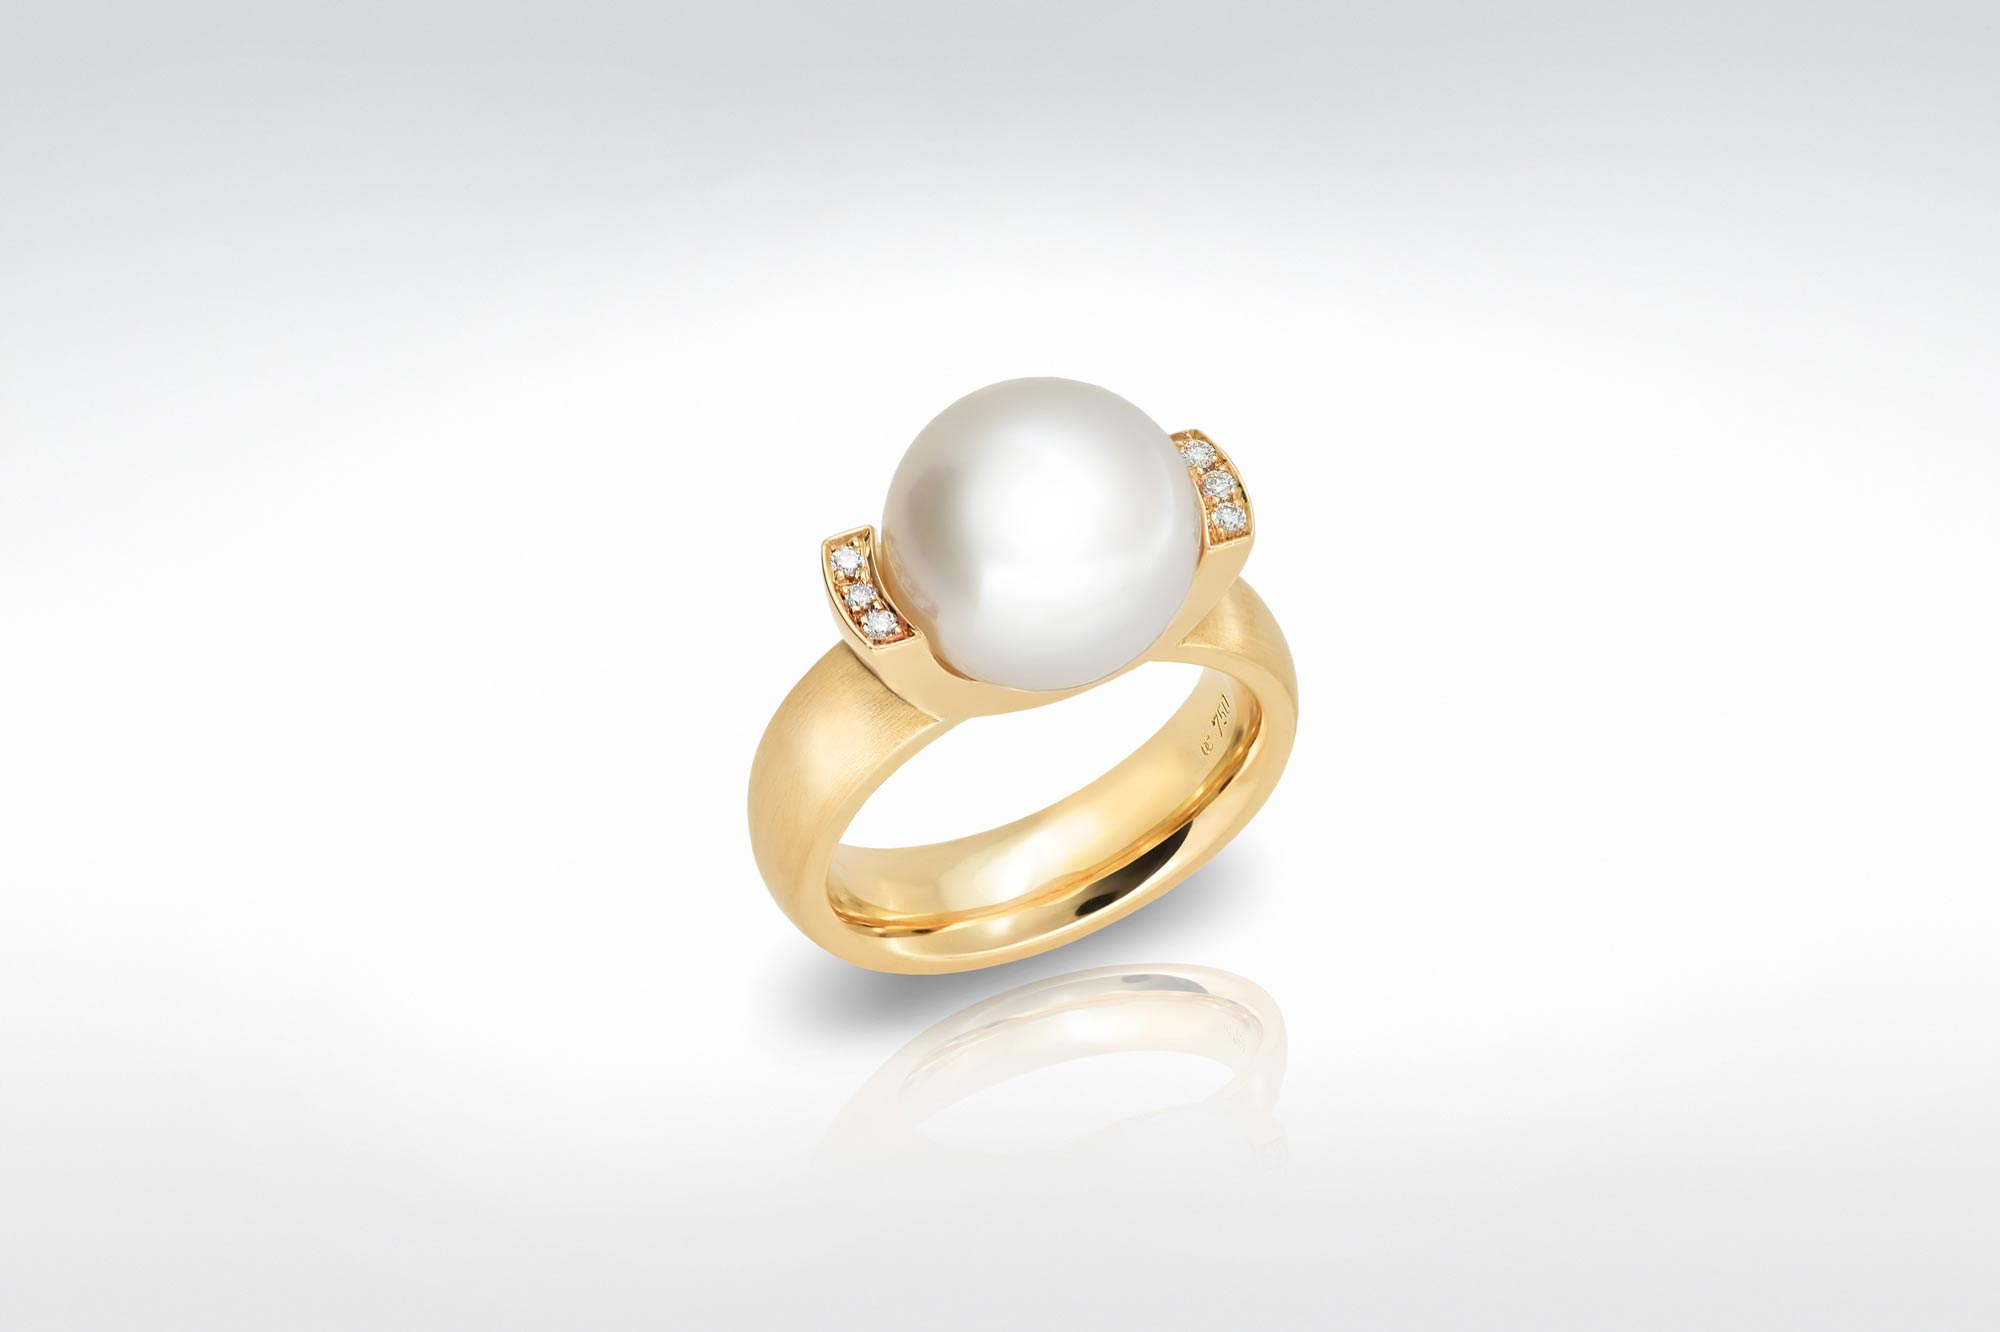 Farbfoto, A-167, Ring 750/GG, Breite 6 mm, 1 Südsee-Perle 12 mm, 6 Brill. 0,06 ct. tw-si, © ki